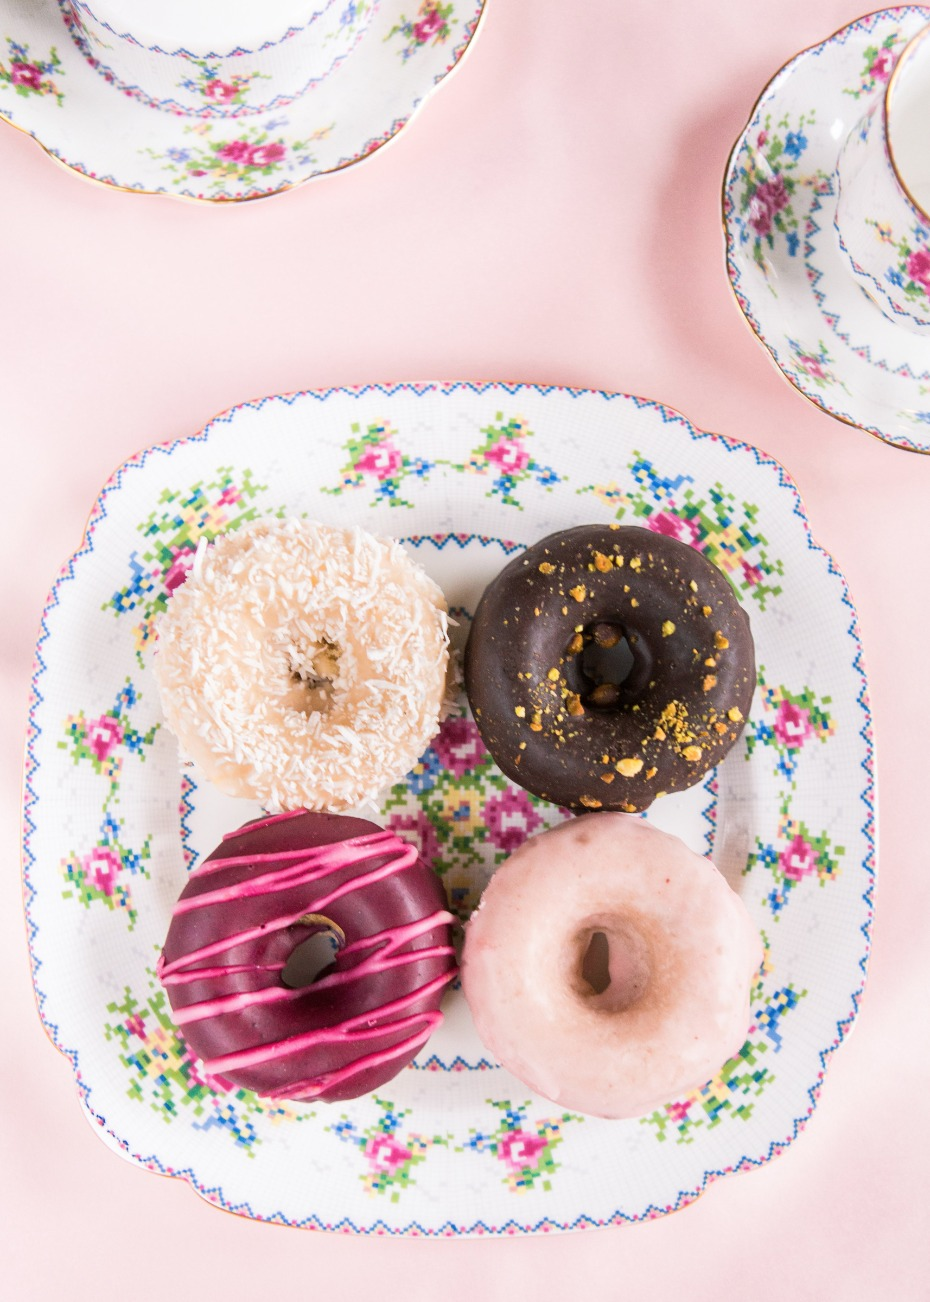 Donuts on a vintage dish